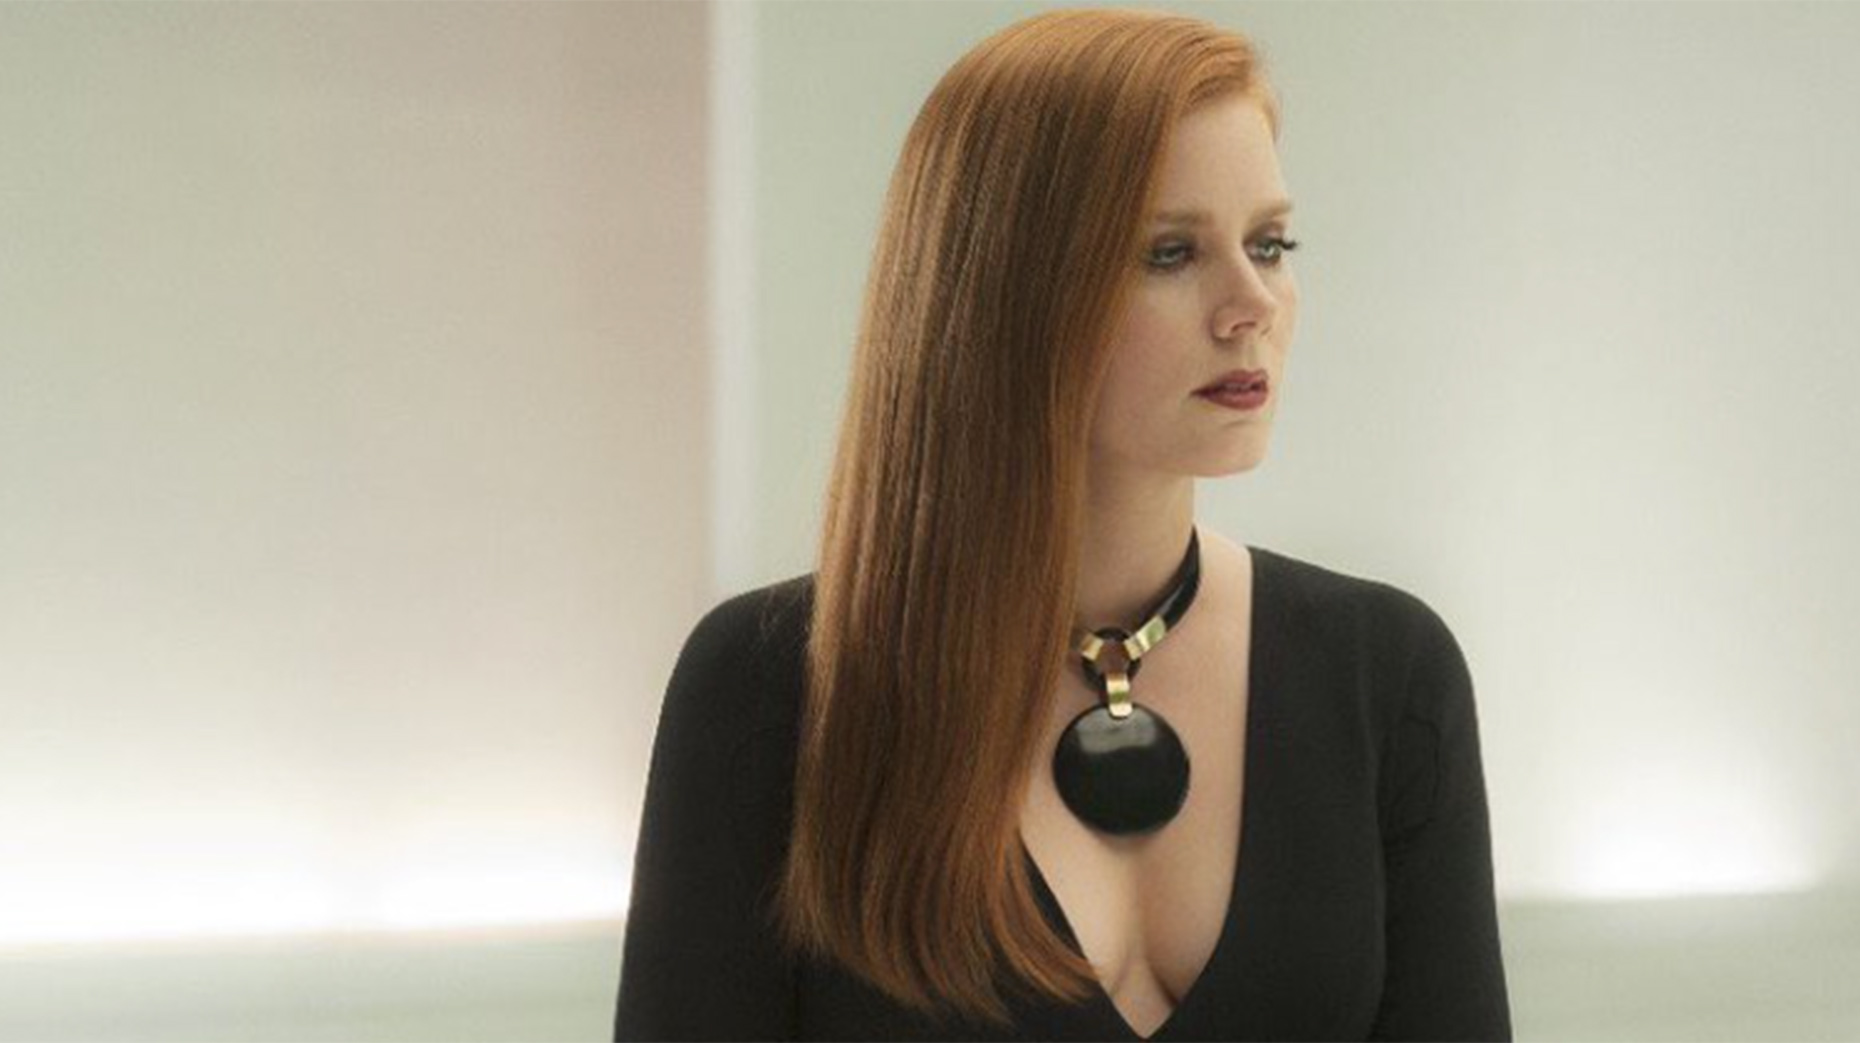 http://i1.wp.com/thelincolnite.co.uk/wp-content/uploads/2016/11/Nocturnal-animals.jpg